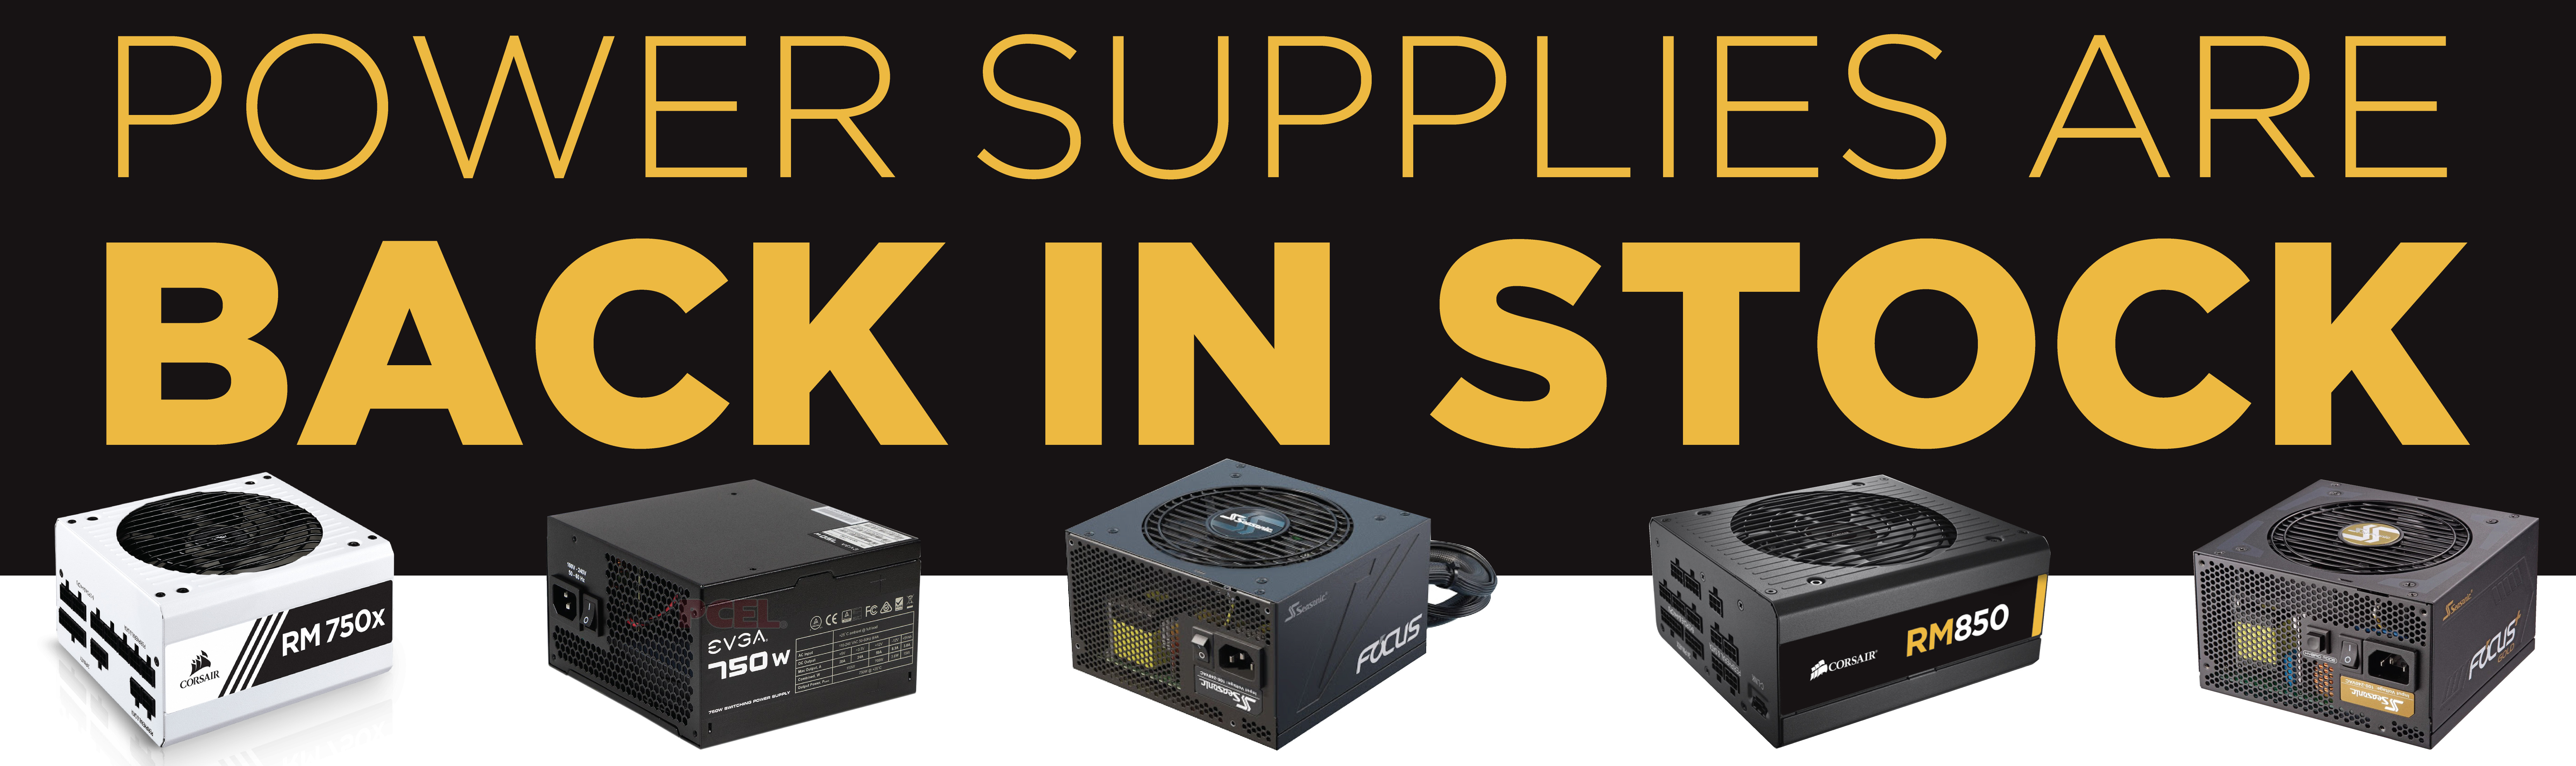 Power supplies are back in stock! Buy now or forever hold your watts.